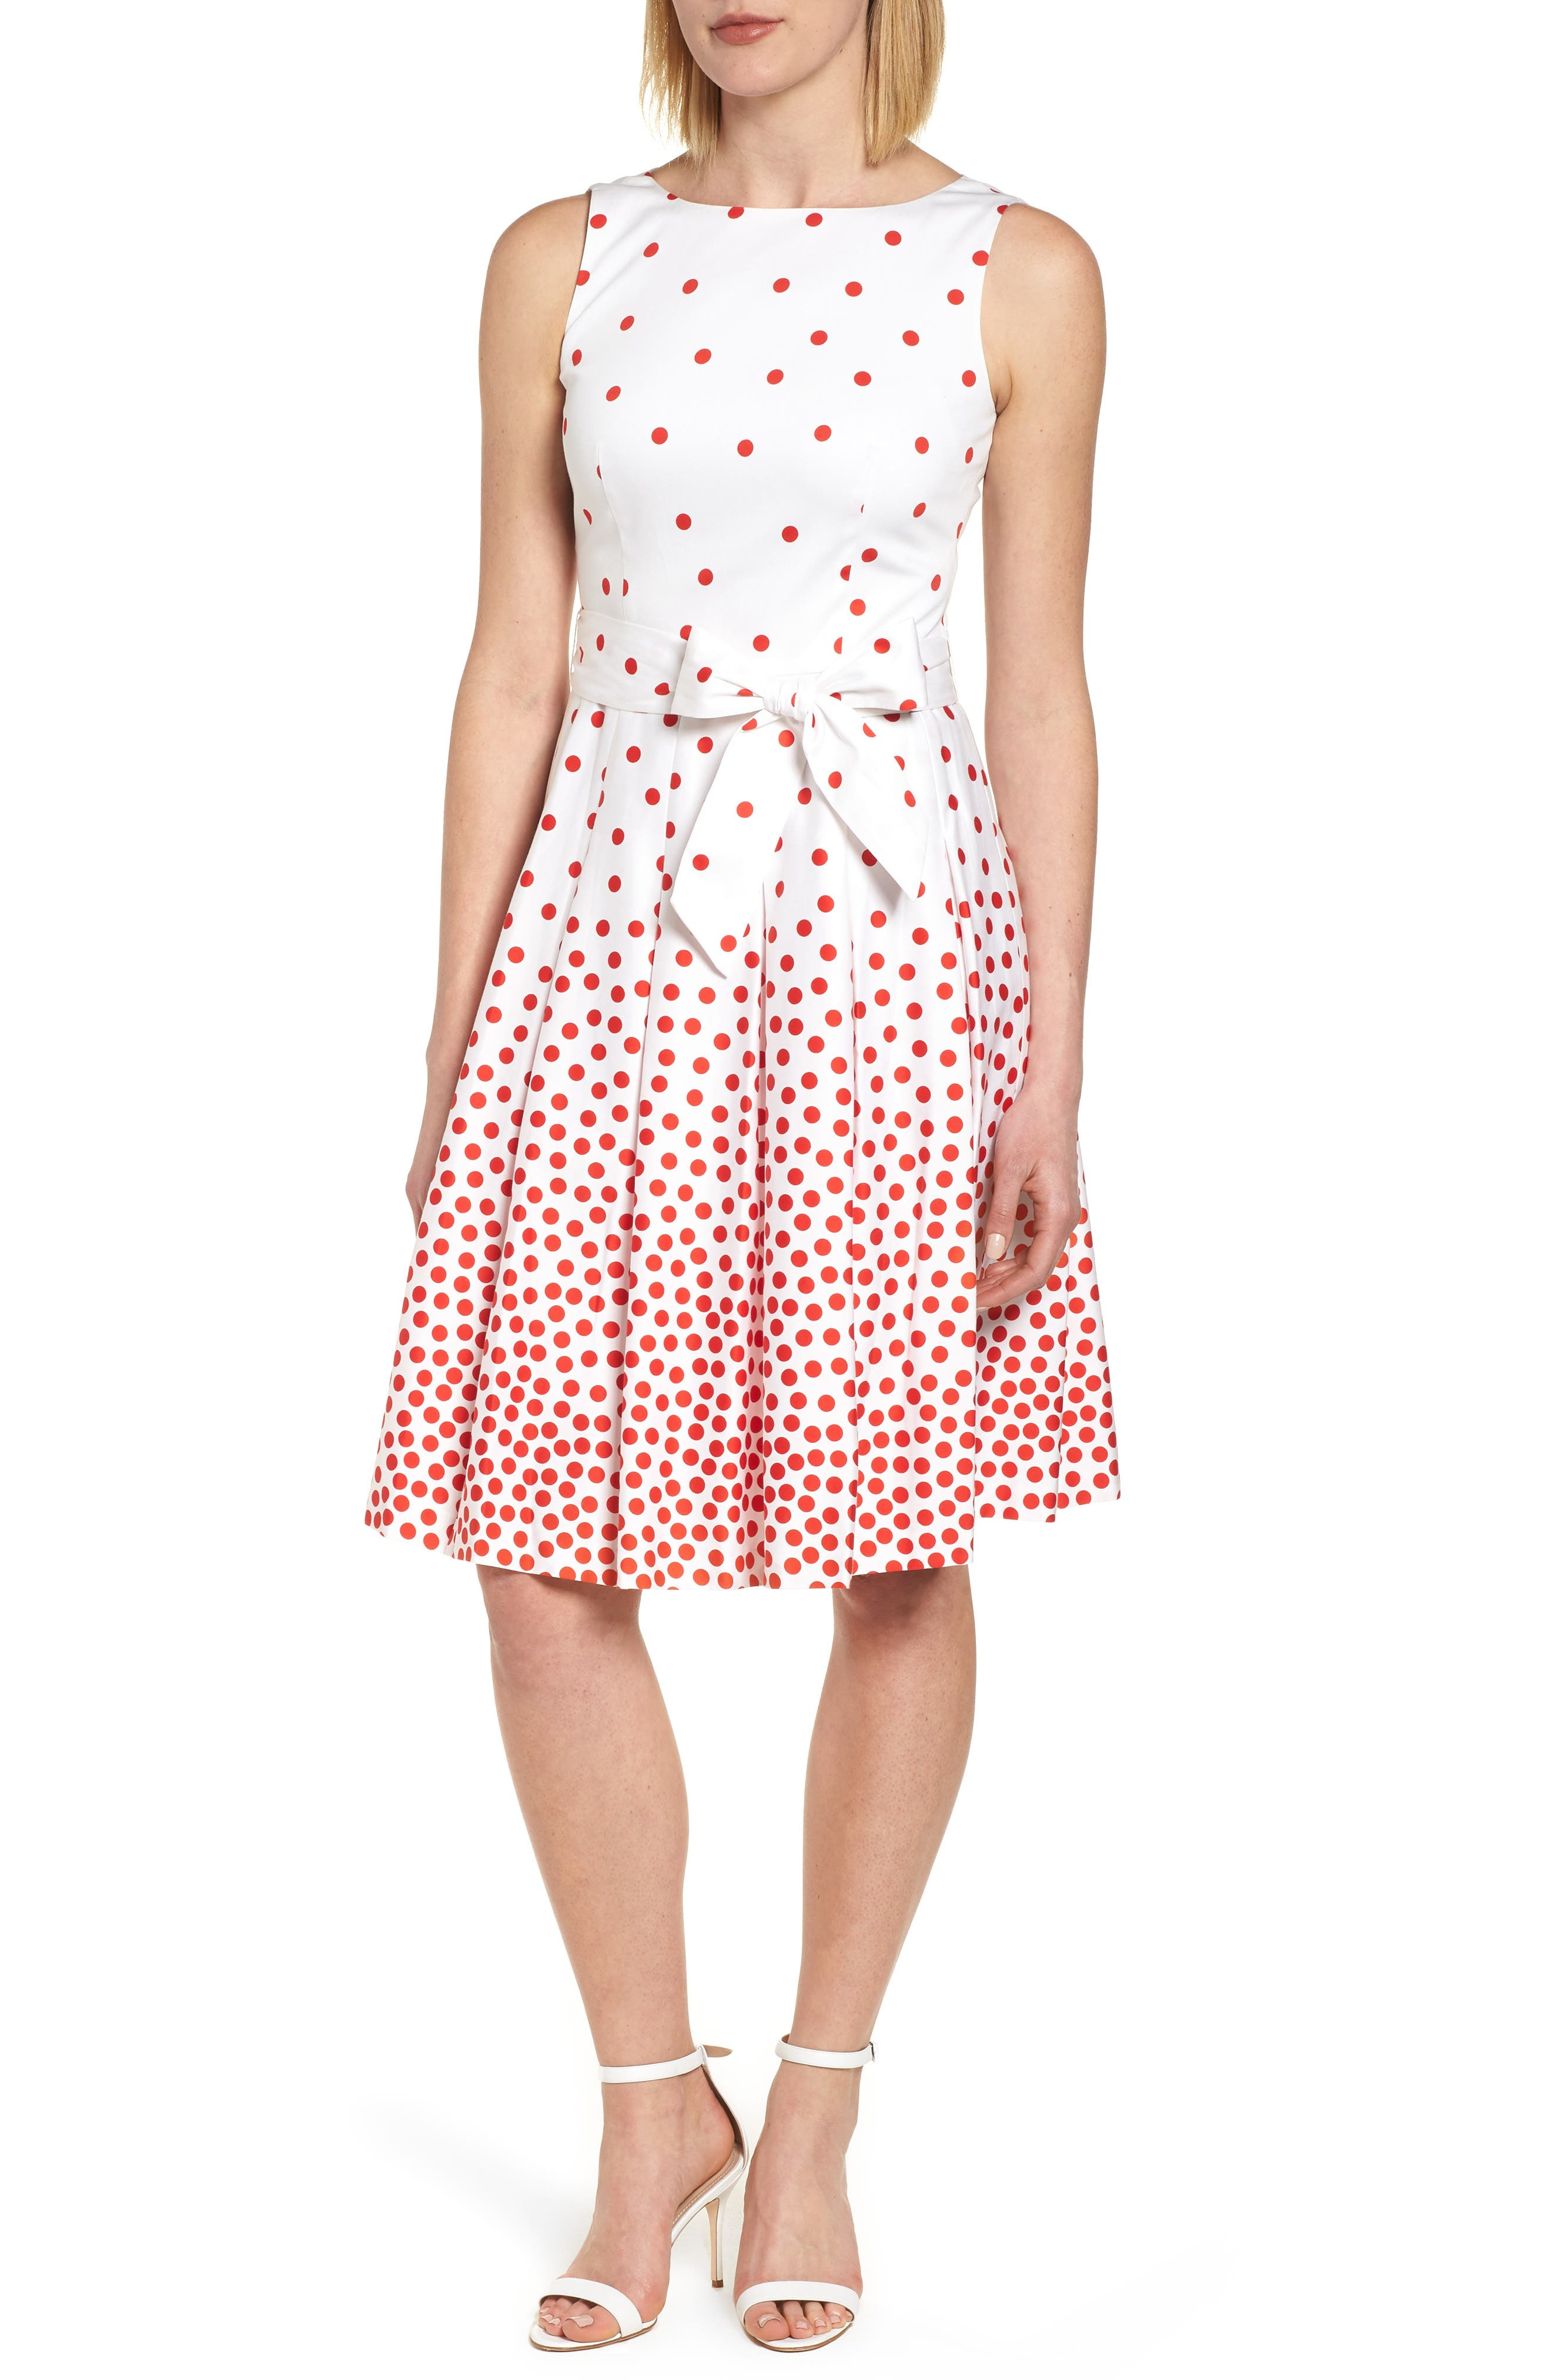 New York Scattered Dot Stretch Cotton Dress,                         Main,                         color, Optic White/ Tomato